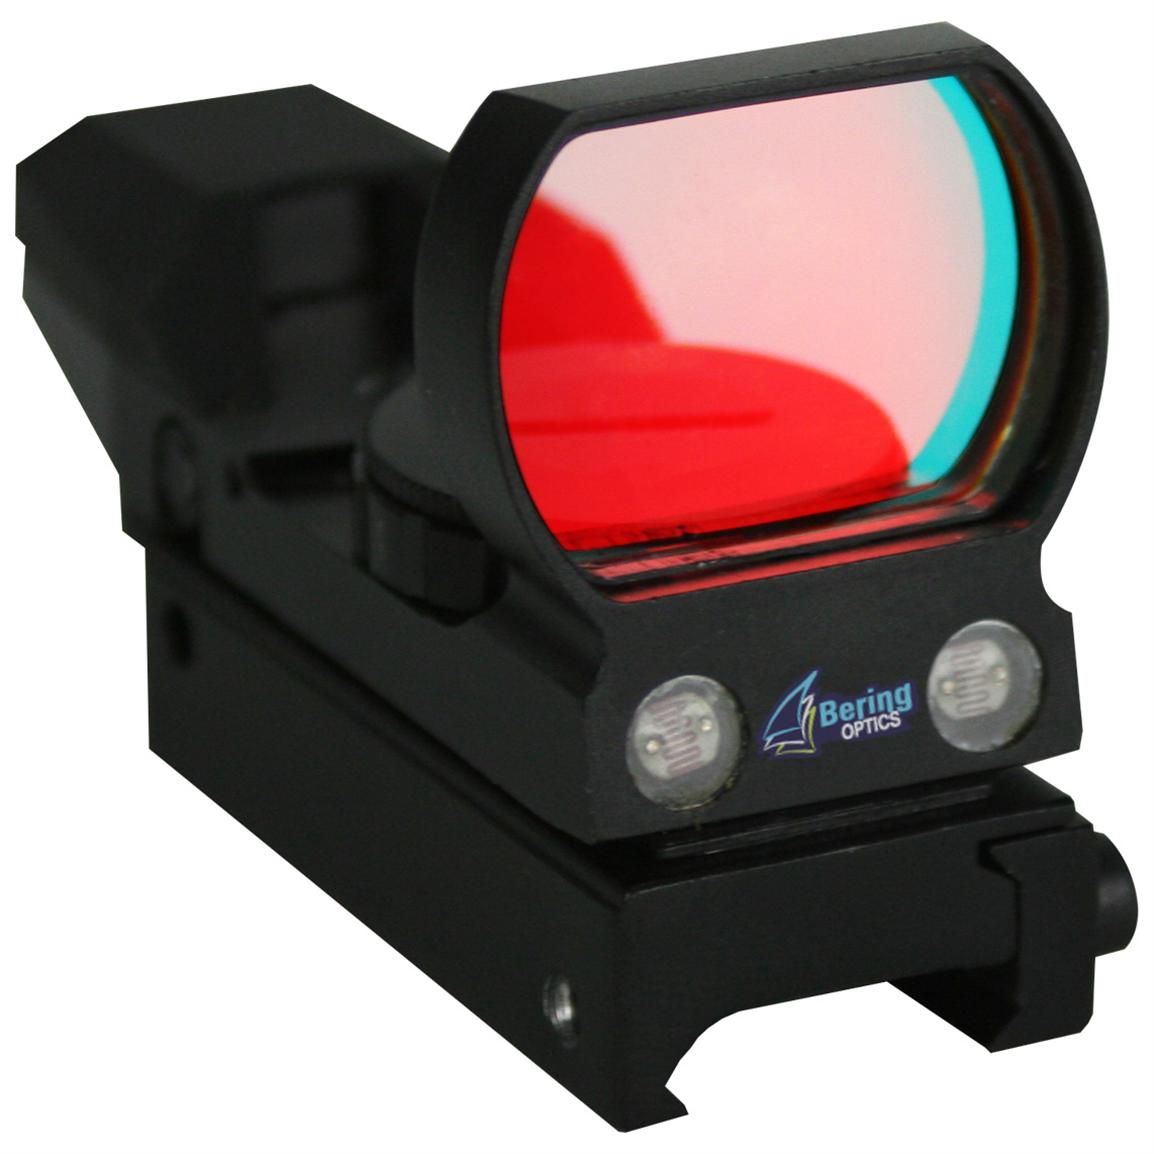 Bering Optics® Sensor Reflex Sight